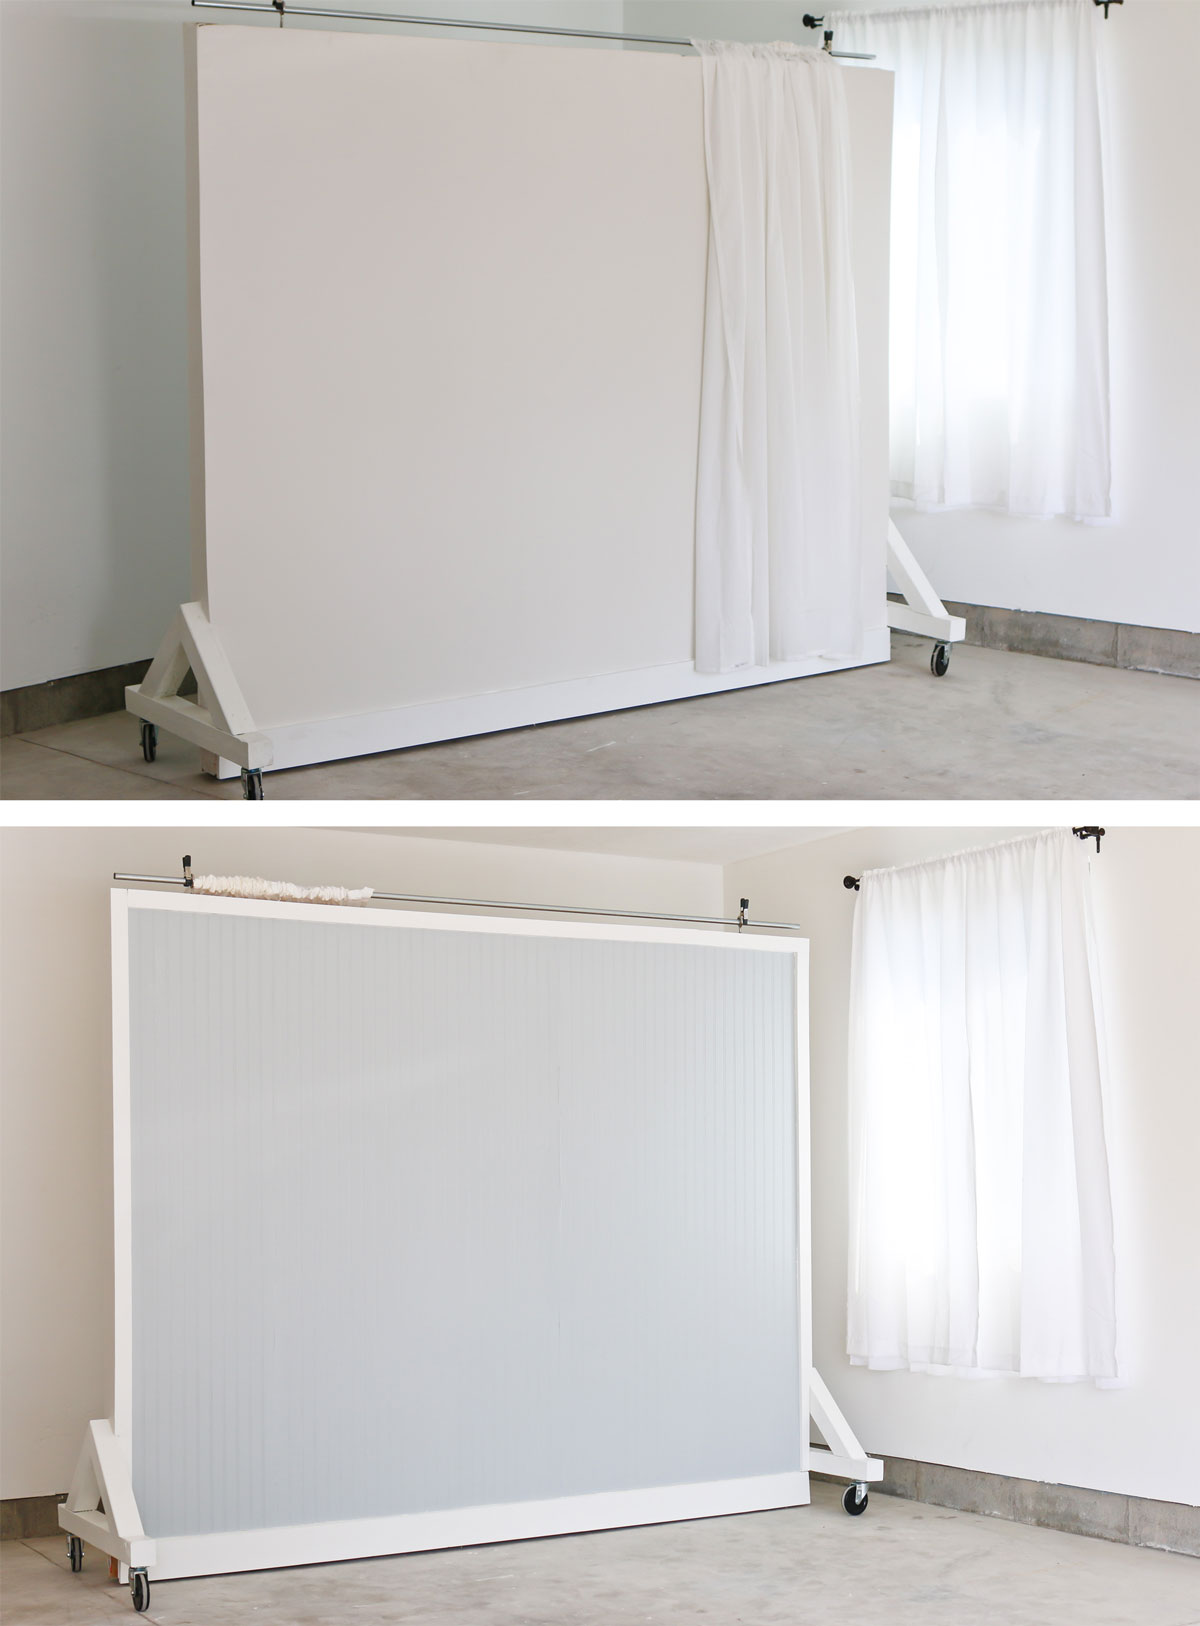 Diy Wall On Wheels Photography Studio Backdrop Tidbits